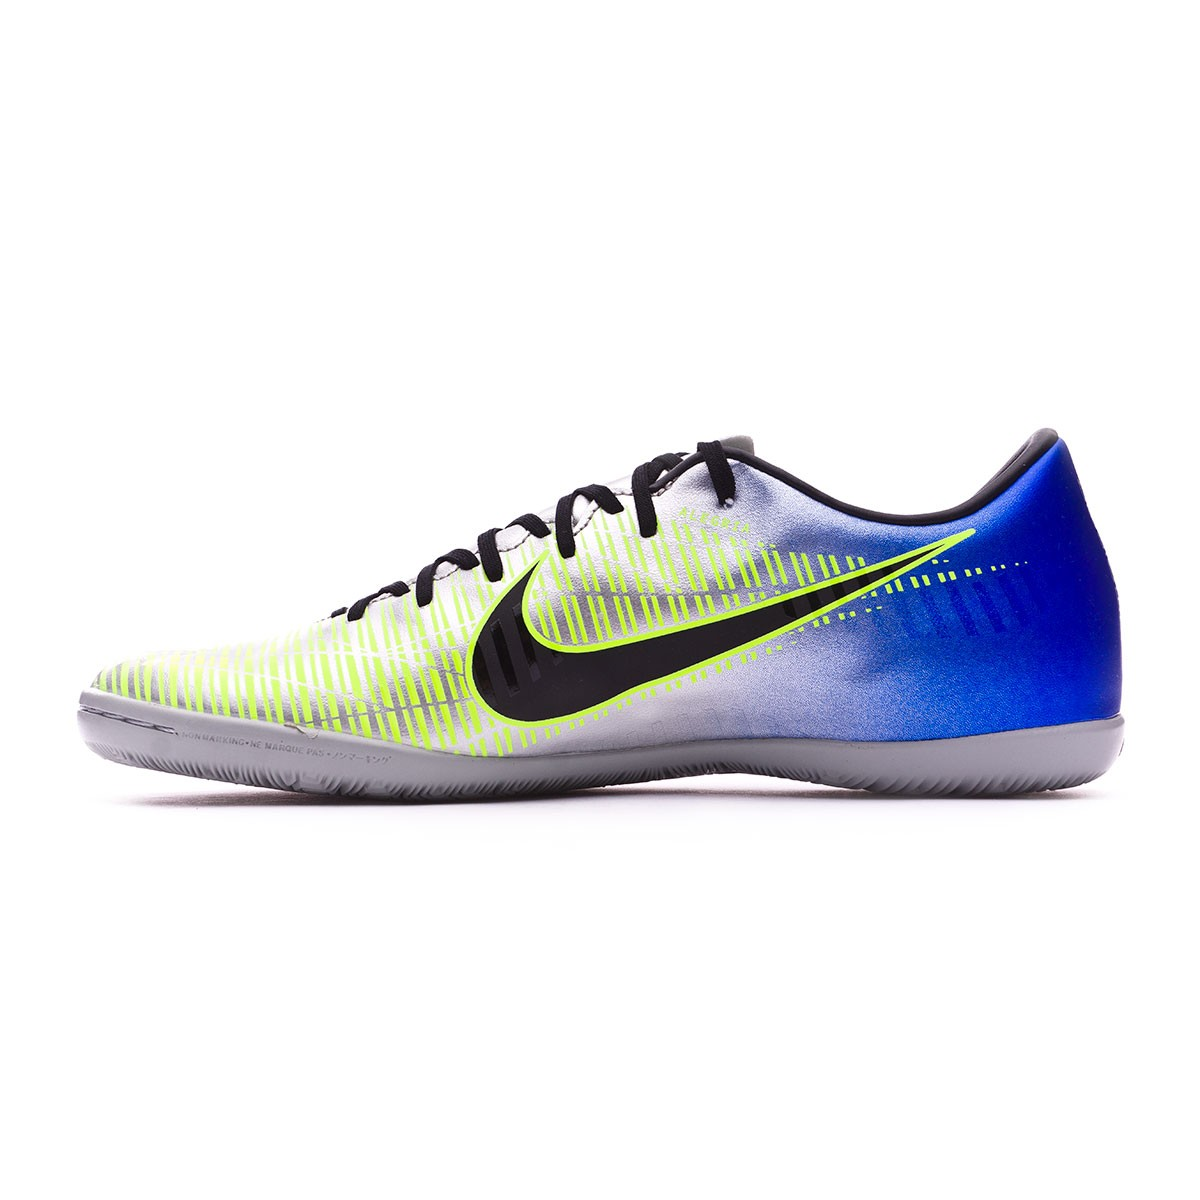 5526125140d Futsal Boot Nike MercurialX Victory VI IC Neymar Racer  blue-Black-Chrome-Volt - Football store Fútbol Emotion